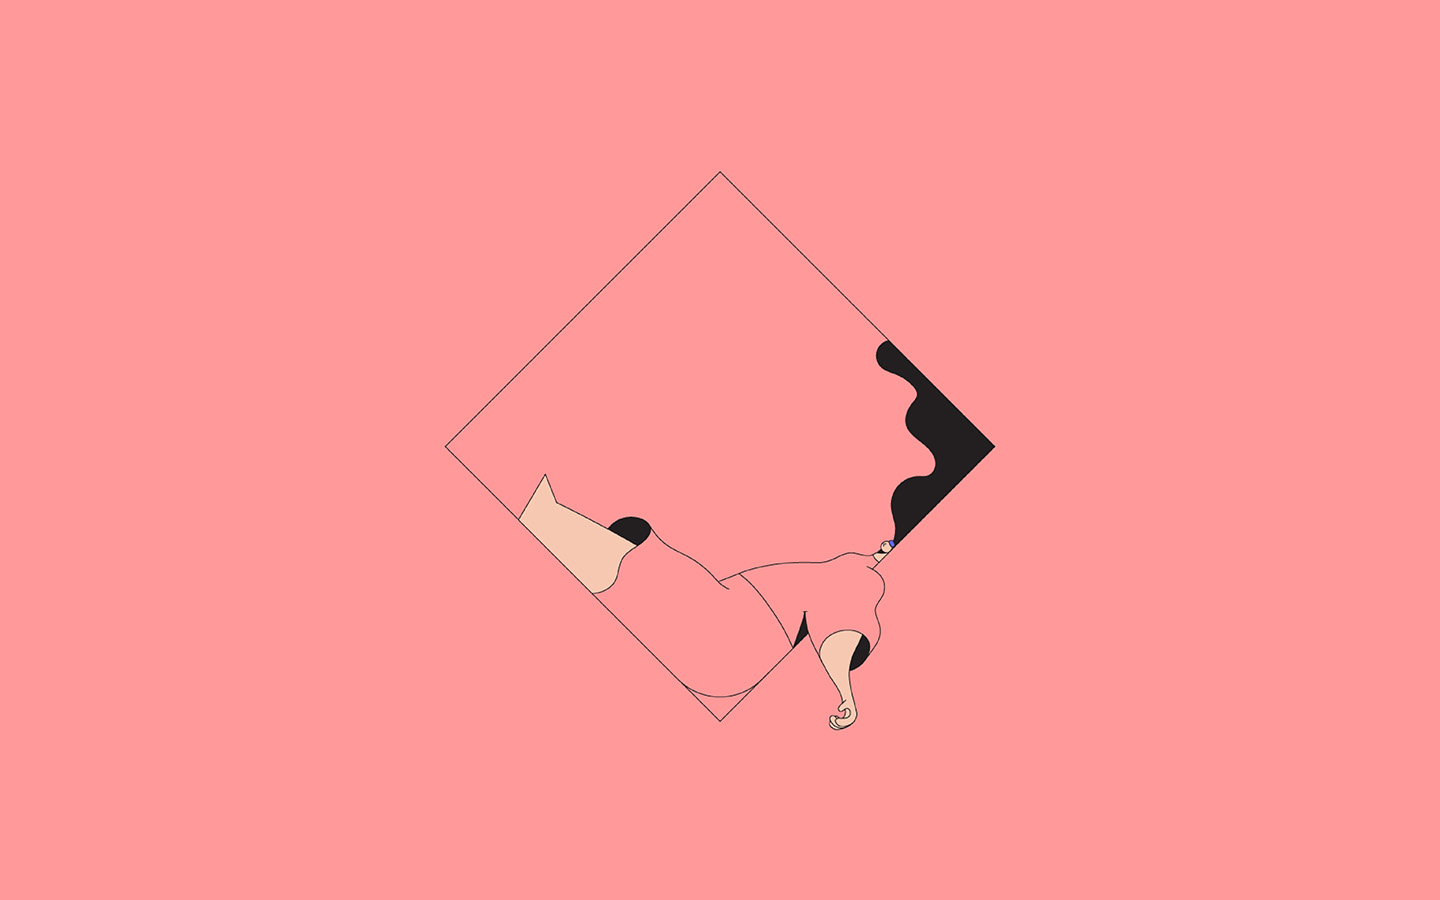 Pink Car Wallpaper Iphone Bb08 Minimal Drawing Pink Illustration Art Wallpaper